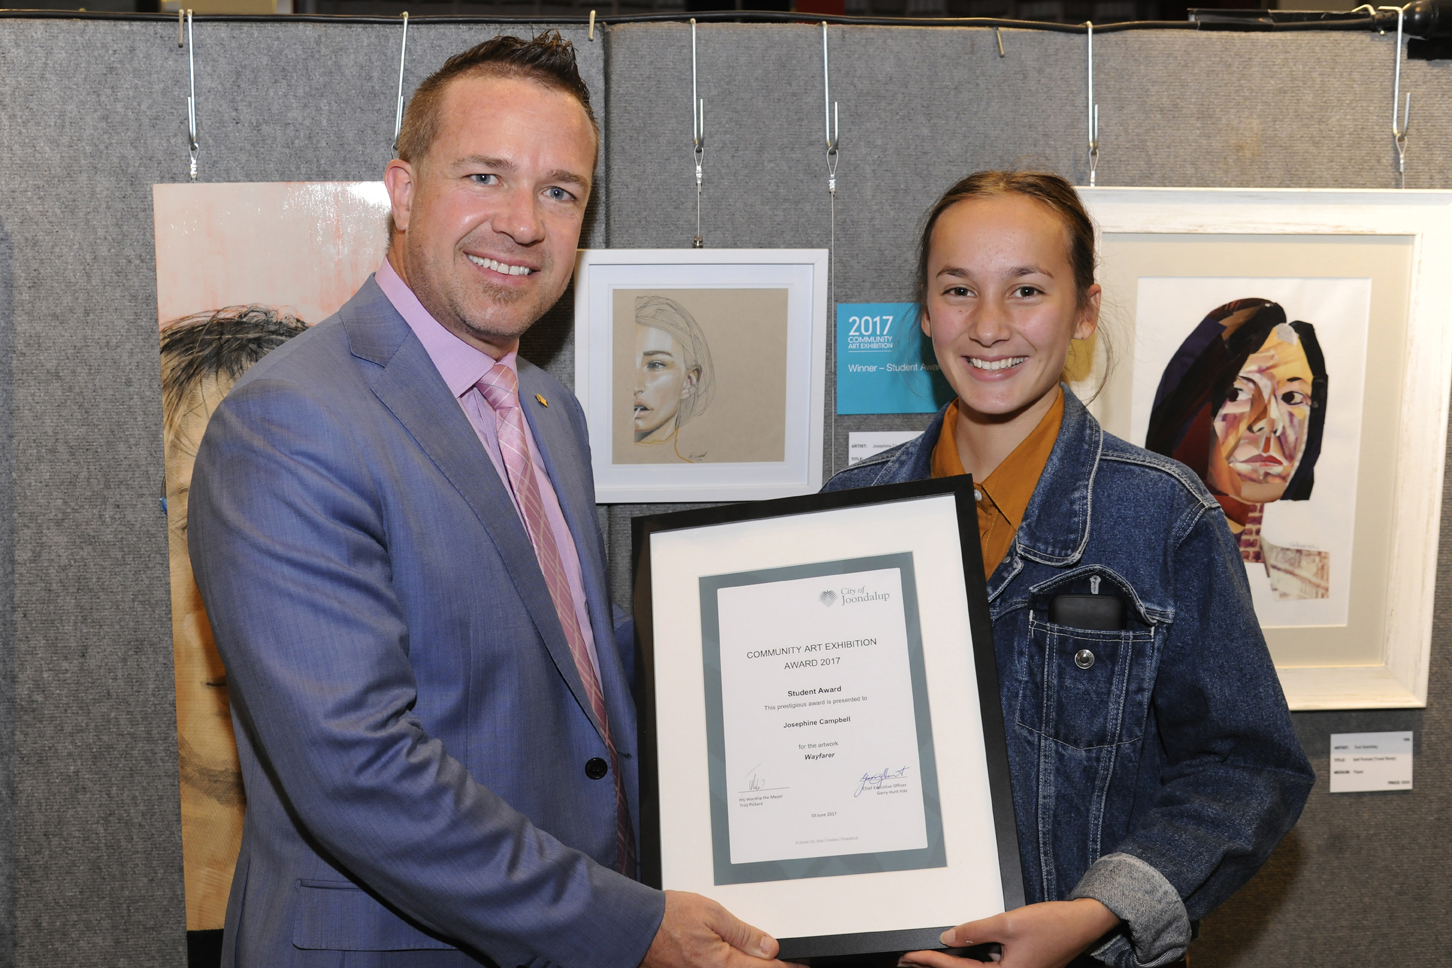 Mayor Troy Pickard and Student Award winner Josephine Campbell. Picture: Chris Kershaw